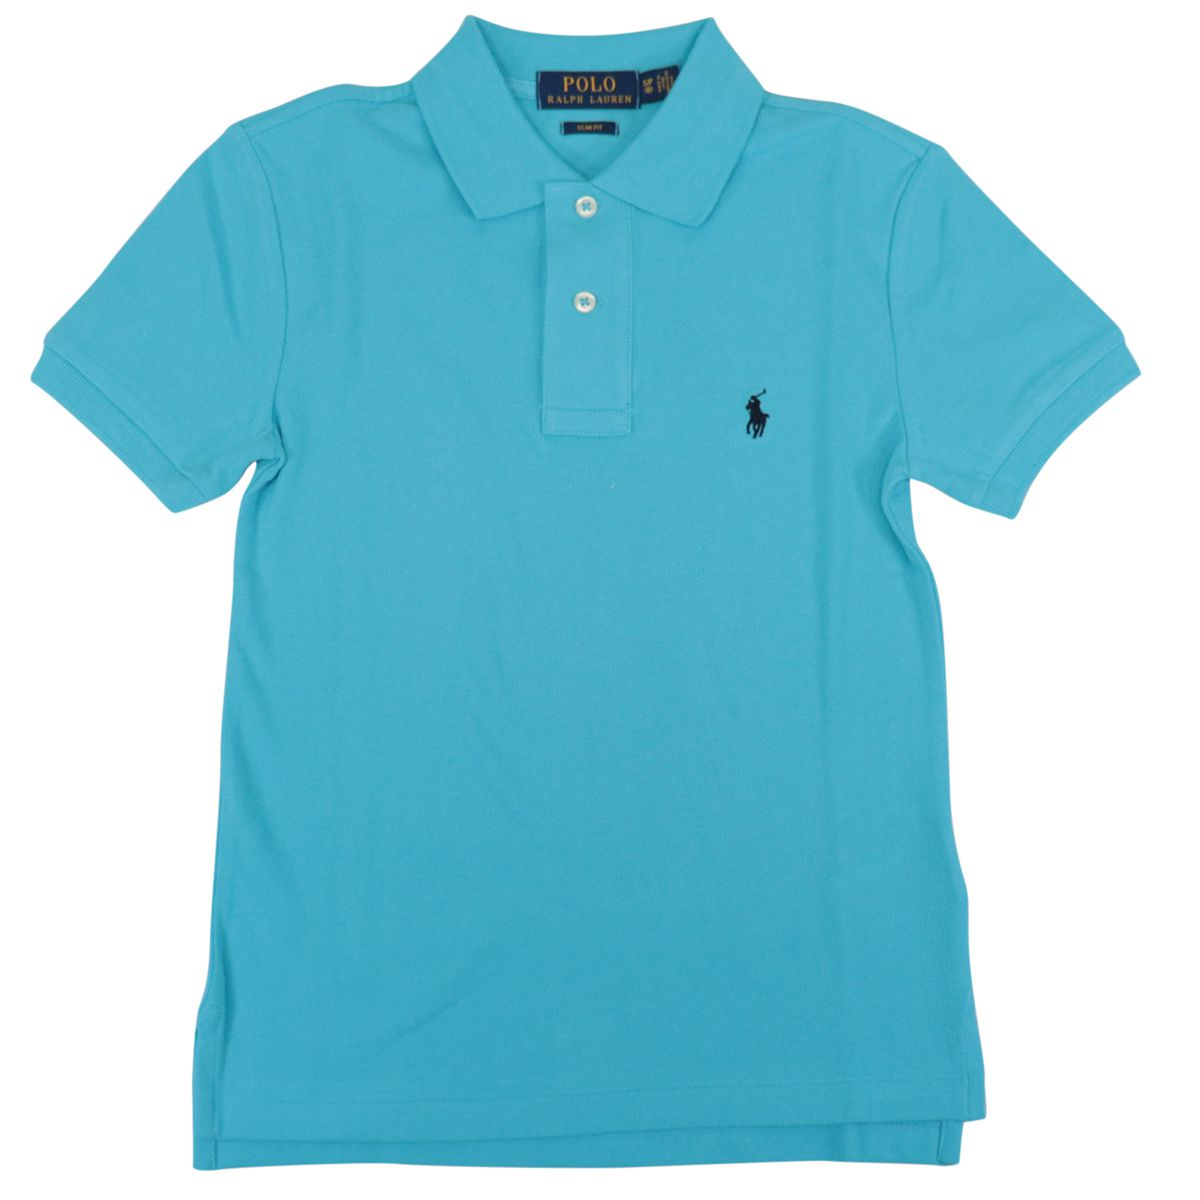 Custom fit polo shirt with contrasting logo embroidery Blue Polo Ralph Lauren